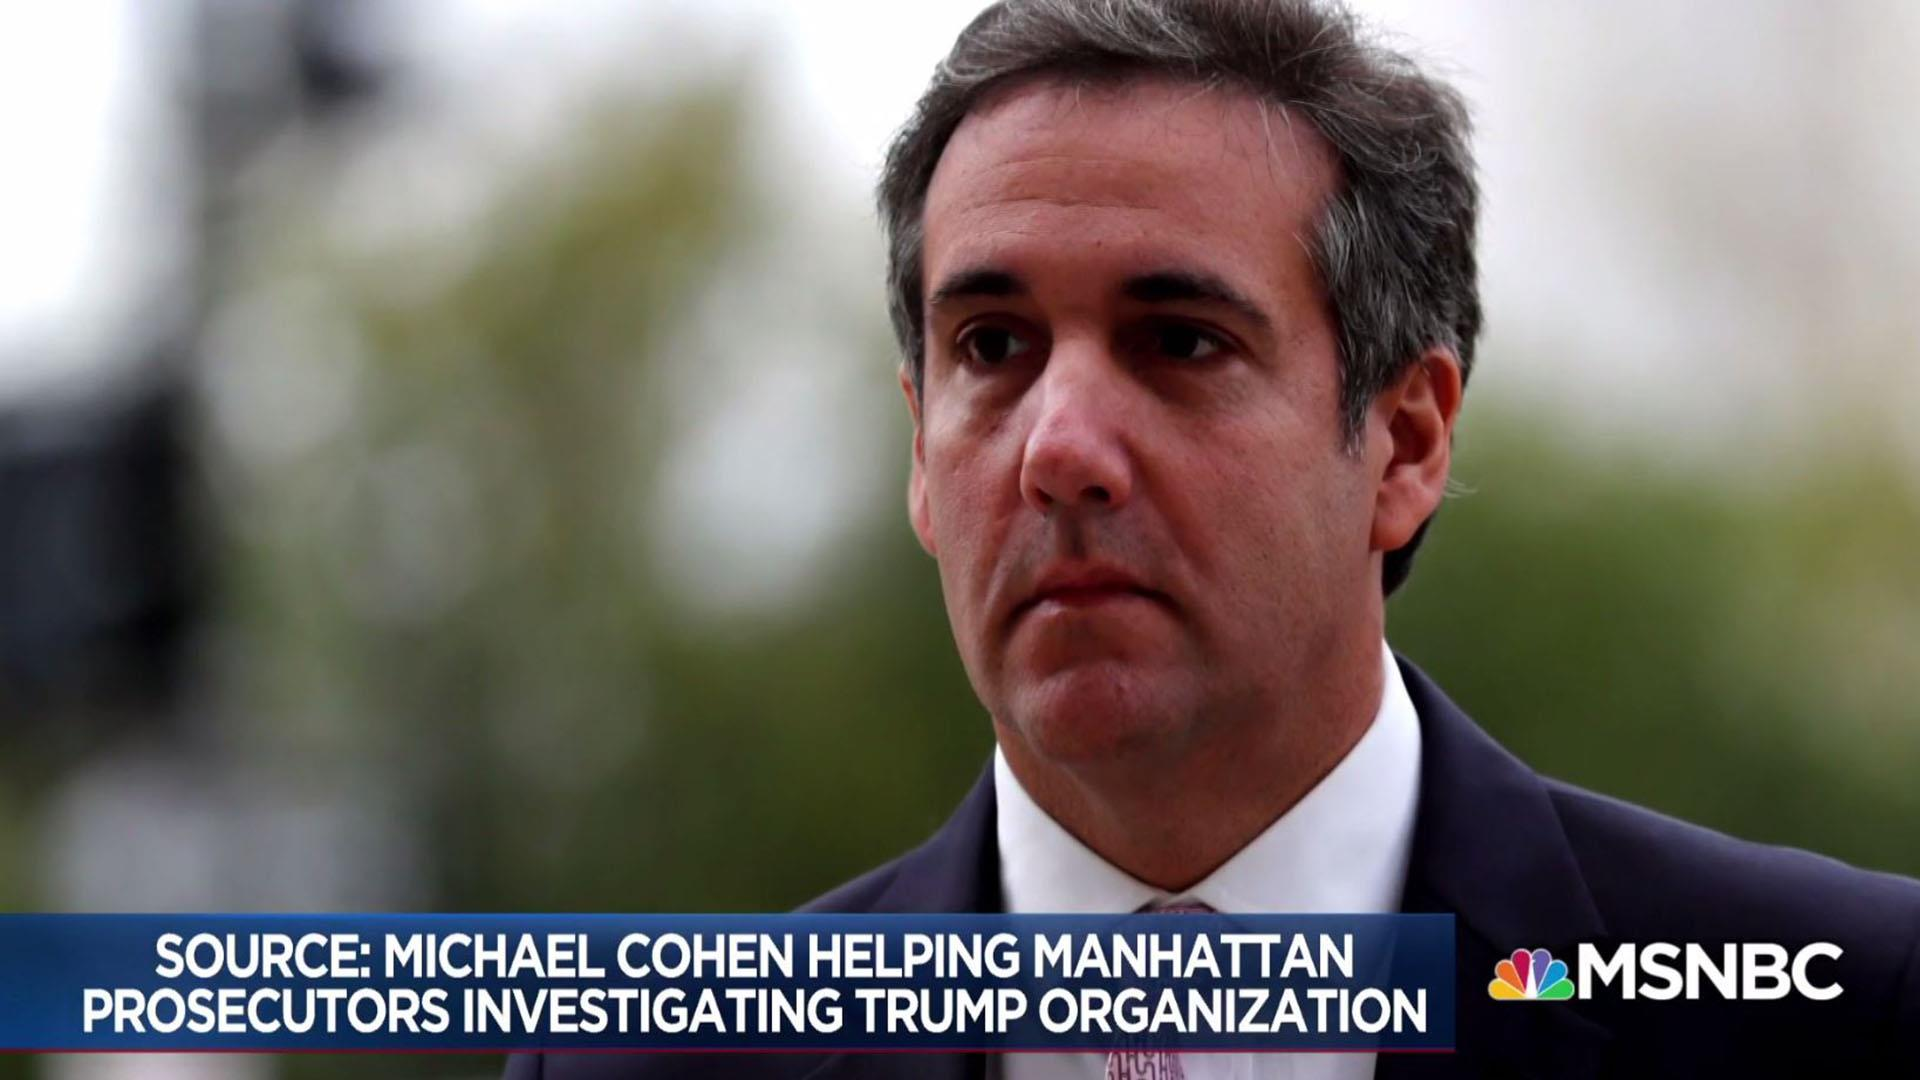 Michael Cohen helping Manhattan DA investigate Trump org: Source